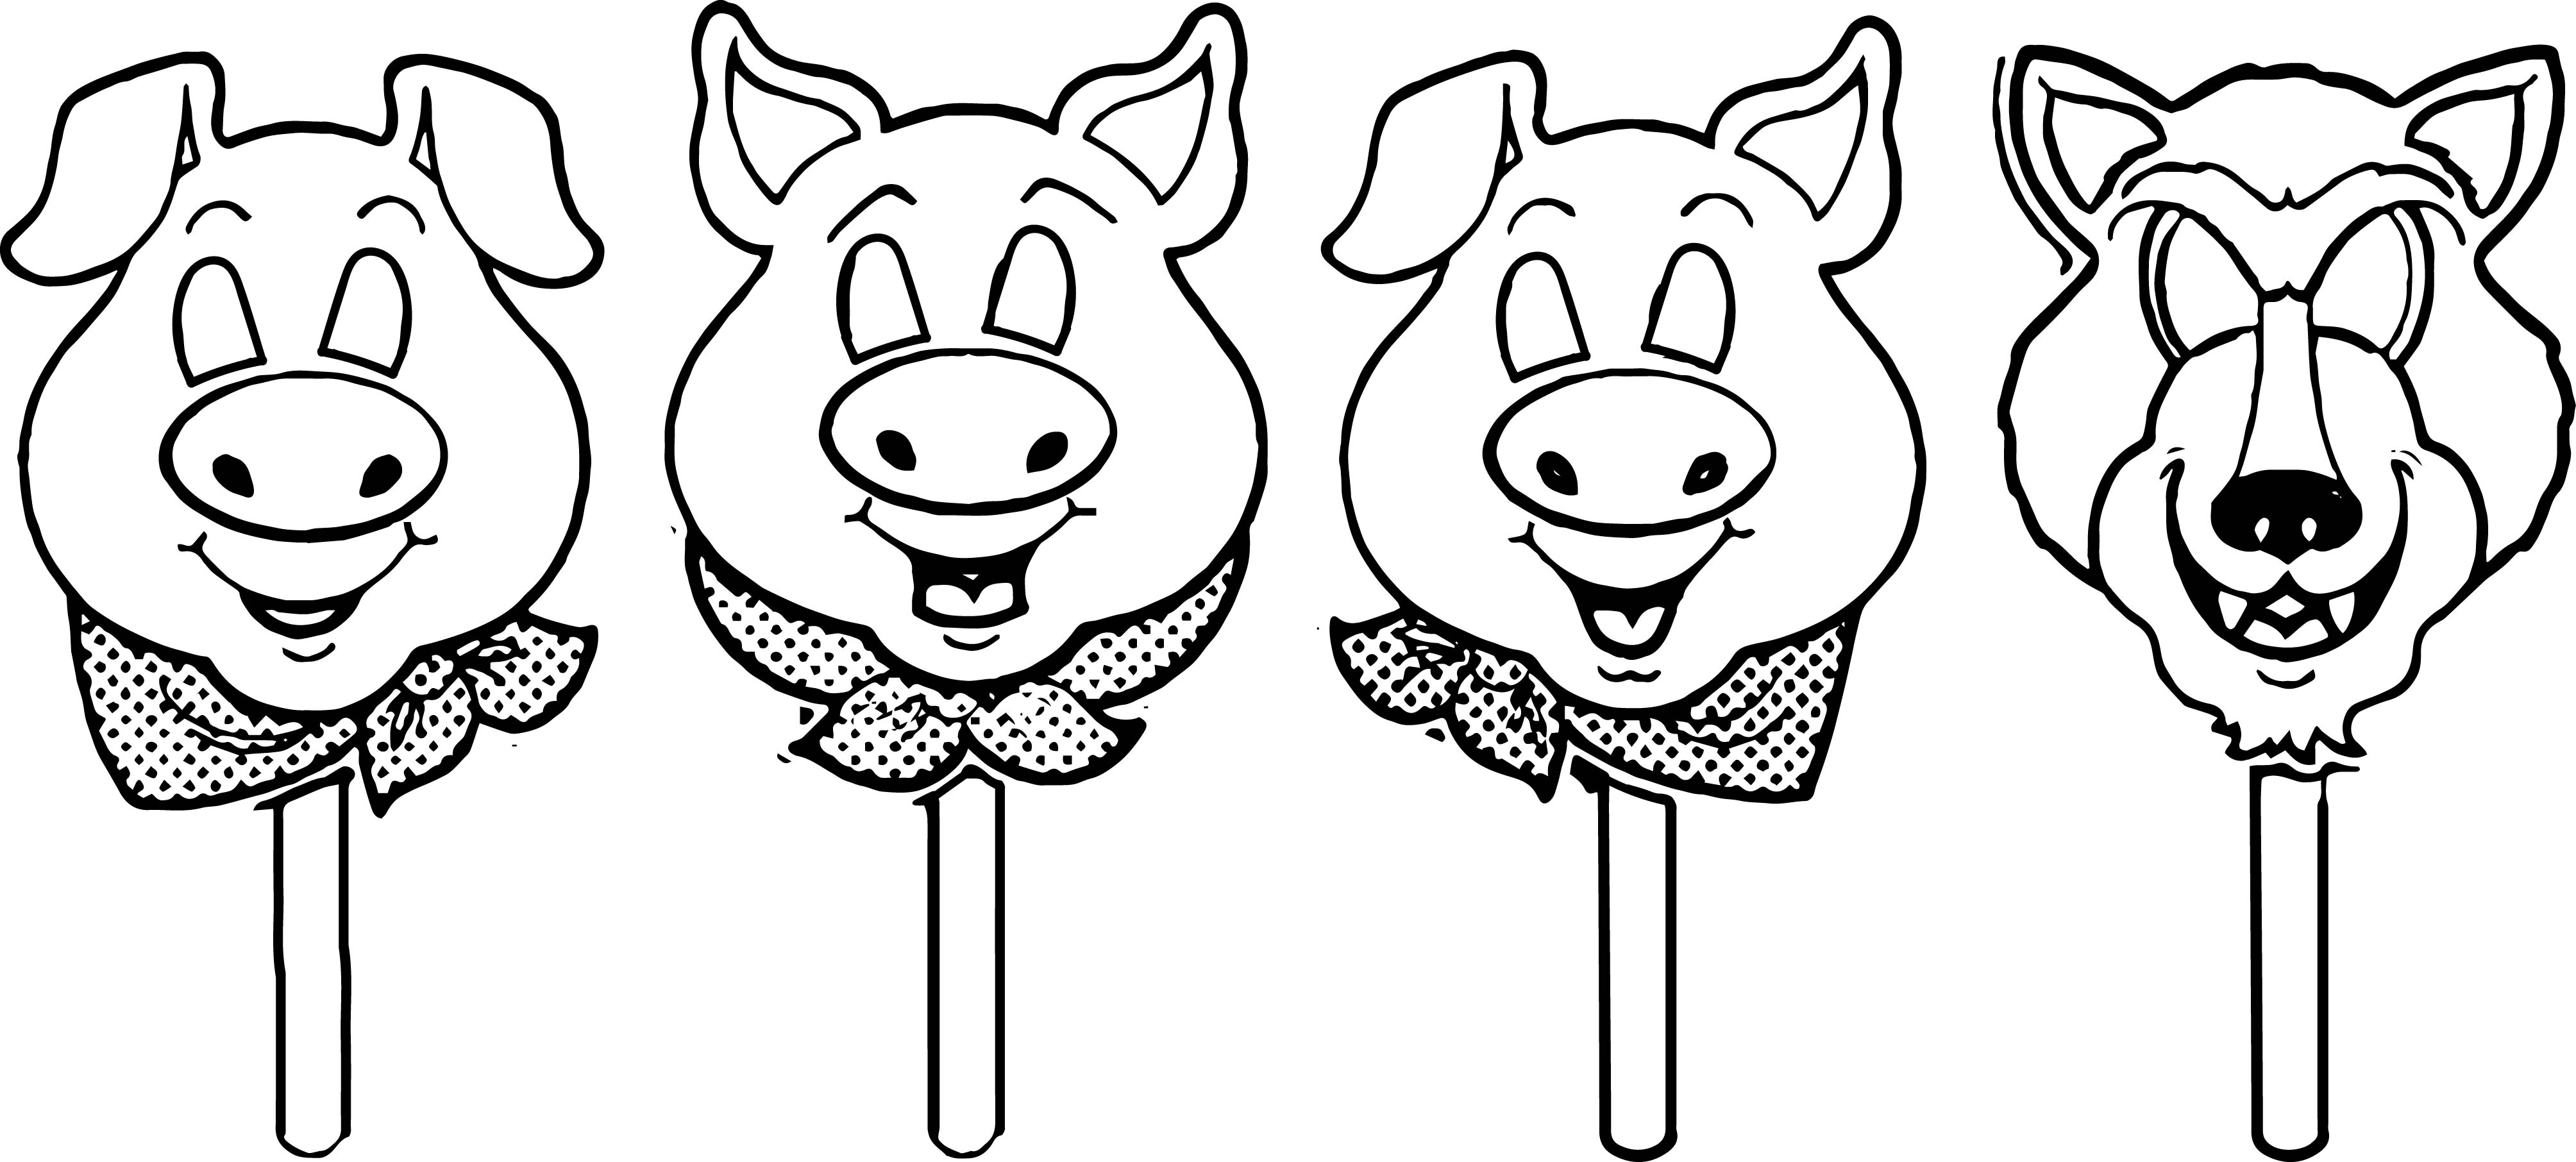 3 Little Pigs Mask Template Coloring Page | Wecoloringpage